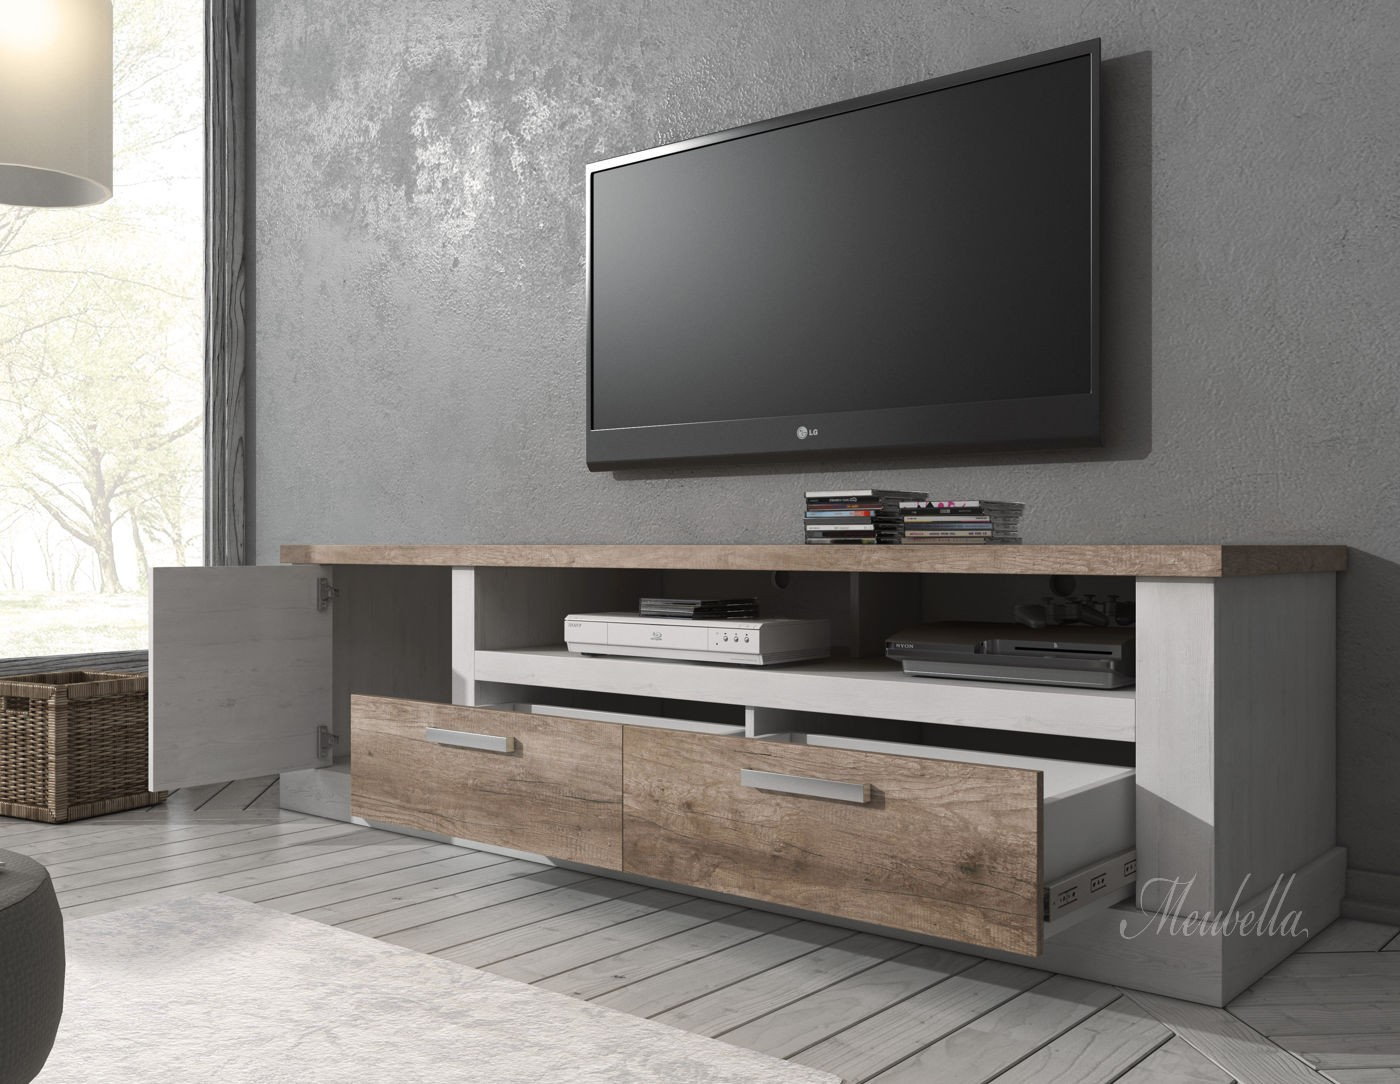 tv meubel danvill wit eiken 180 cm meubella. Black Bedroom Furniture Sets. Home Design Ideas